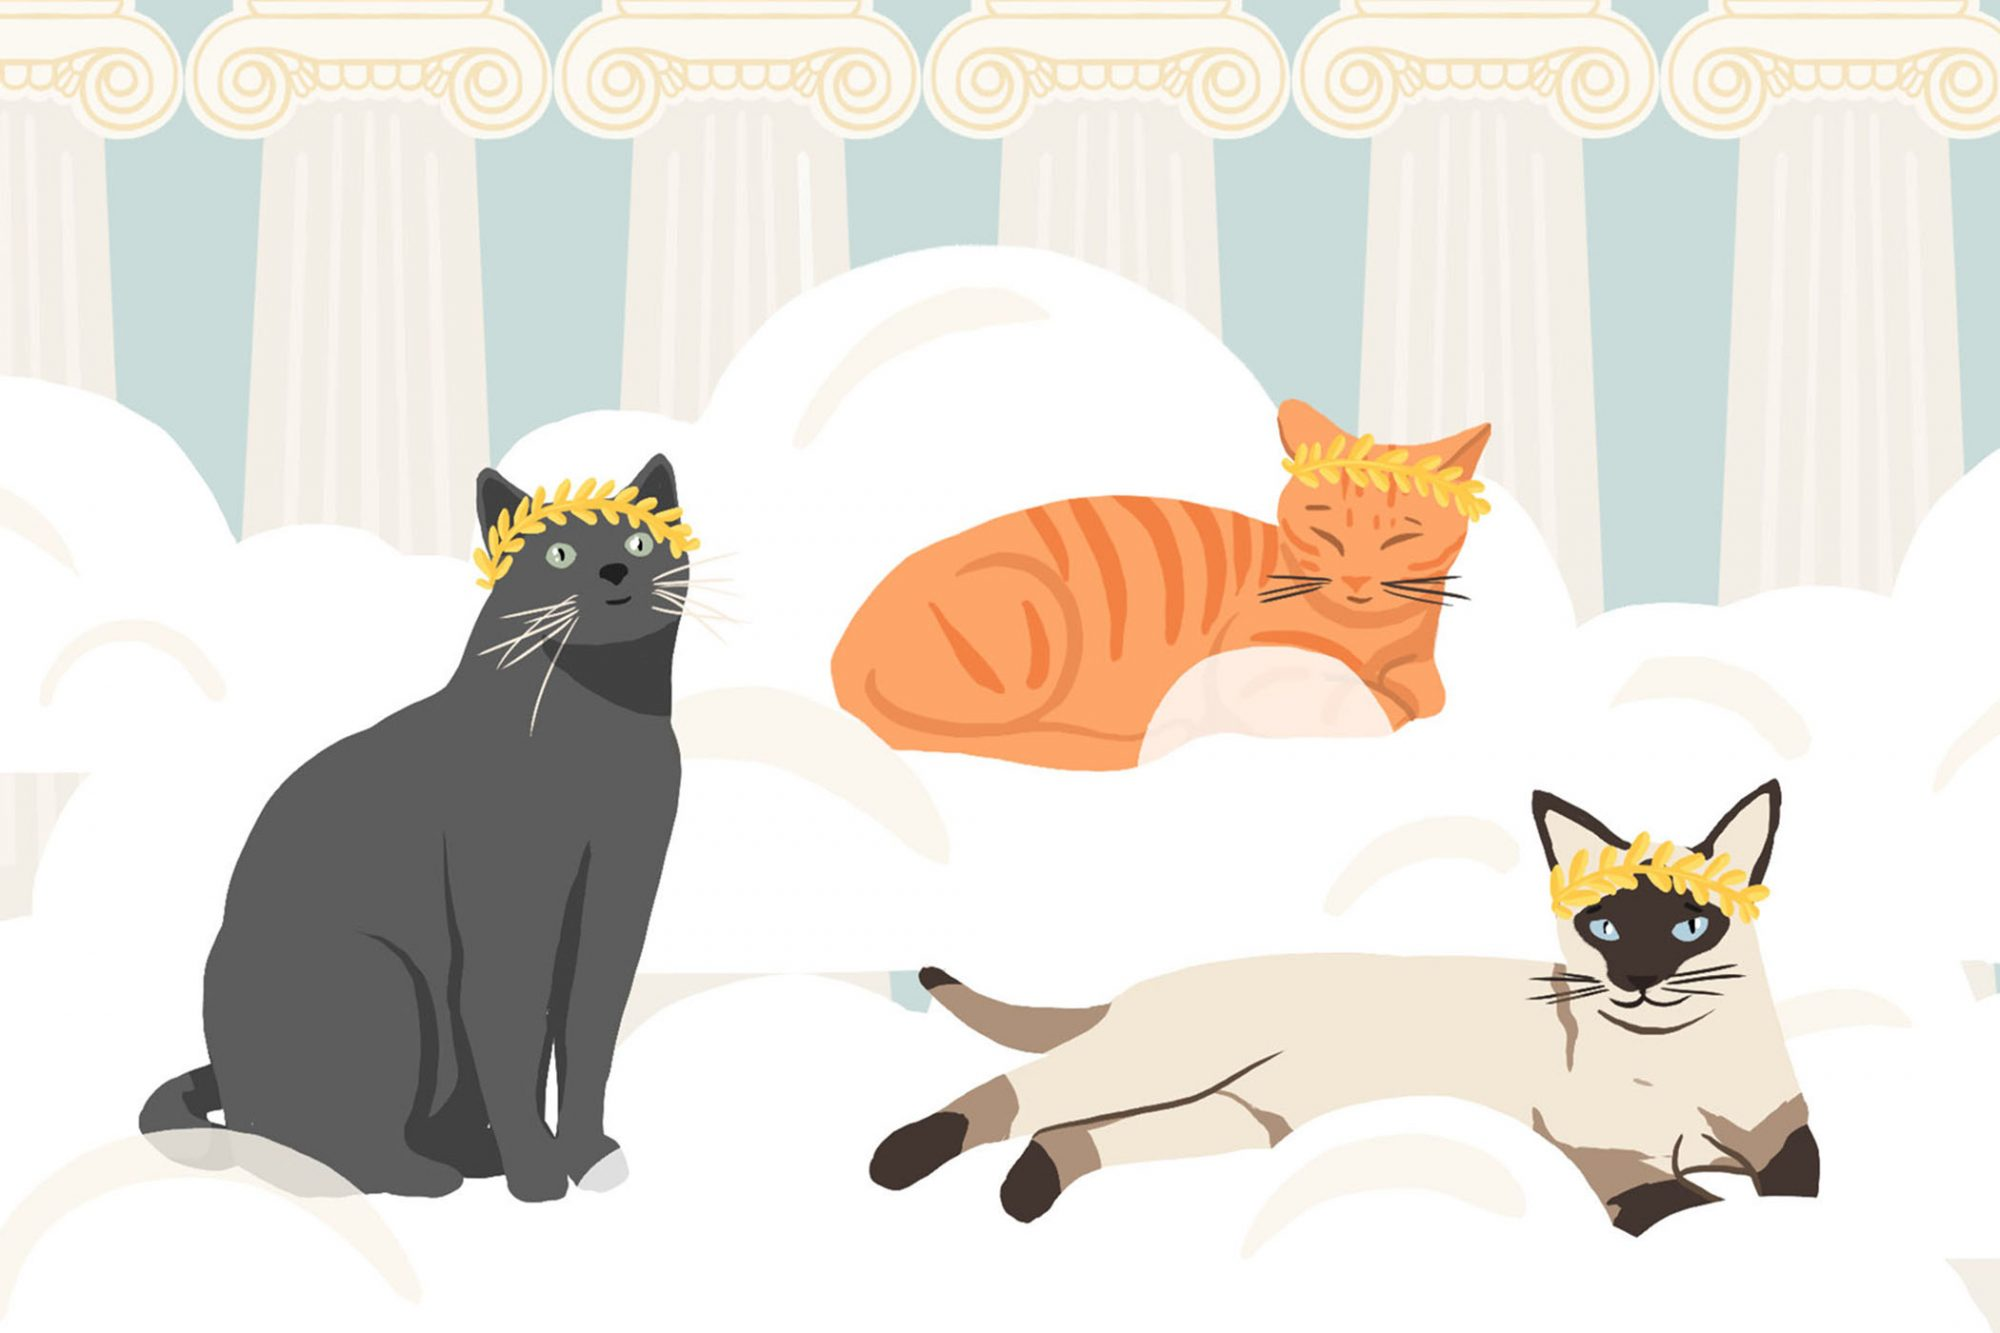 illustration of three cats with goddess leaf headbands sitting in clouds in front of greed columns